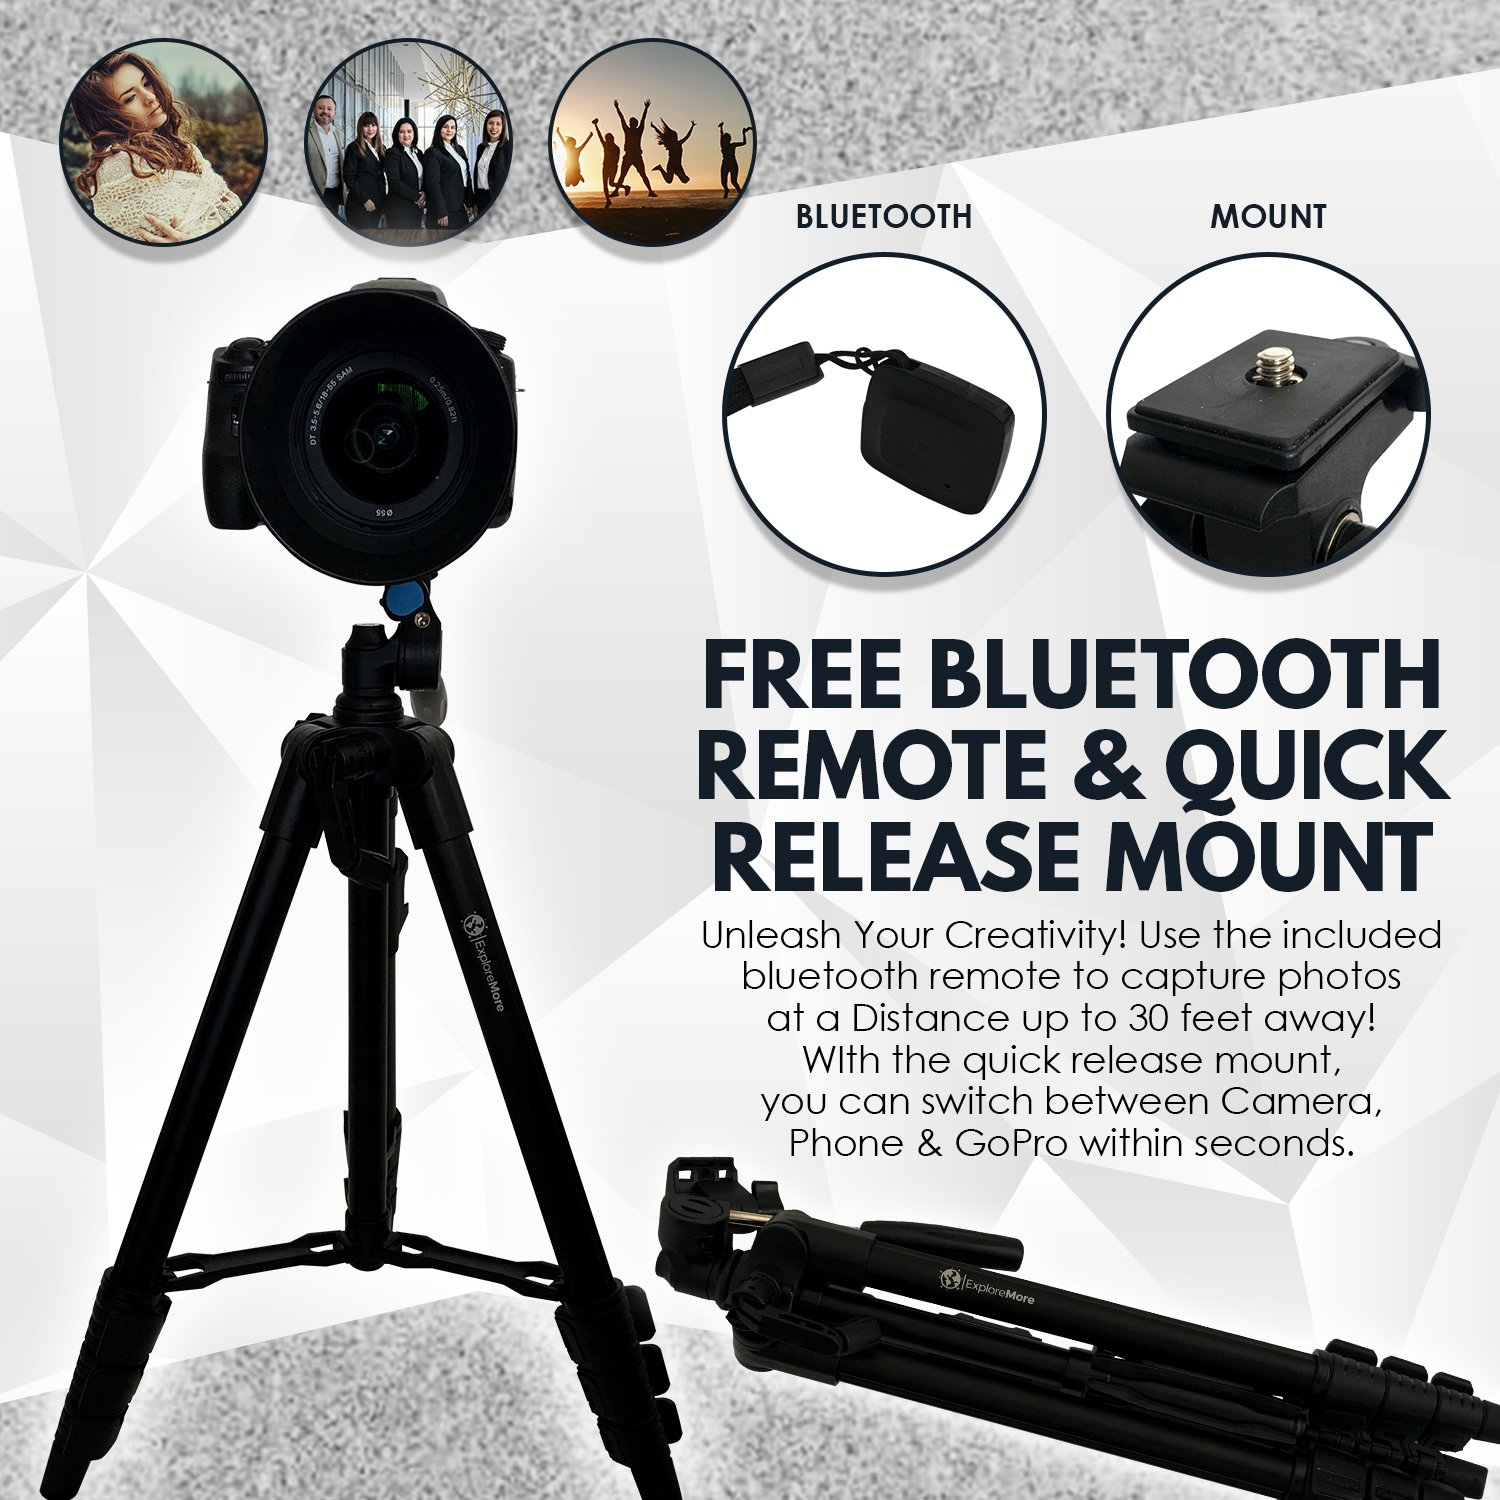 Lightweight Travel Tripod 48 Inch Bluetooth Remote Basic Camera Controls Unleashed Phone Mount Gopro Carrying Bag Premium Aluminum Digital Android